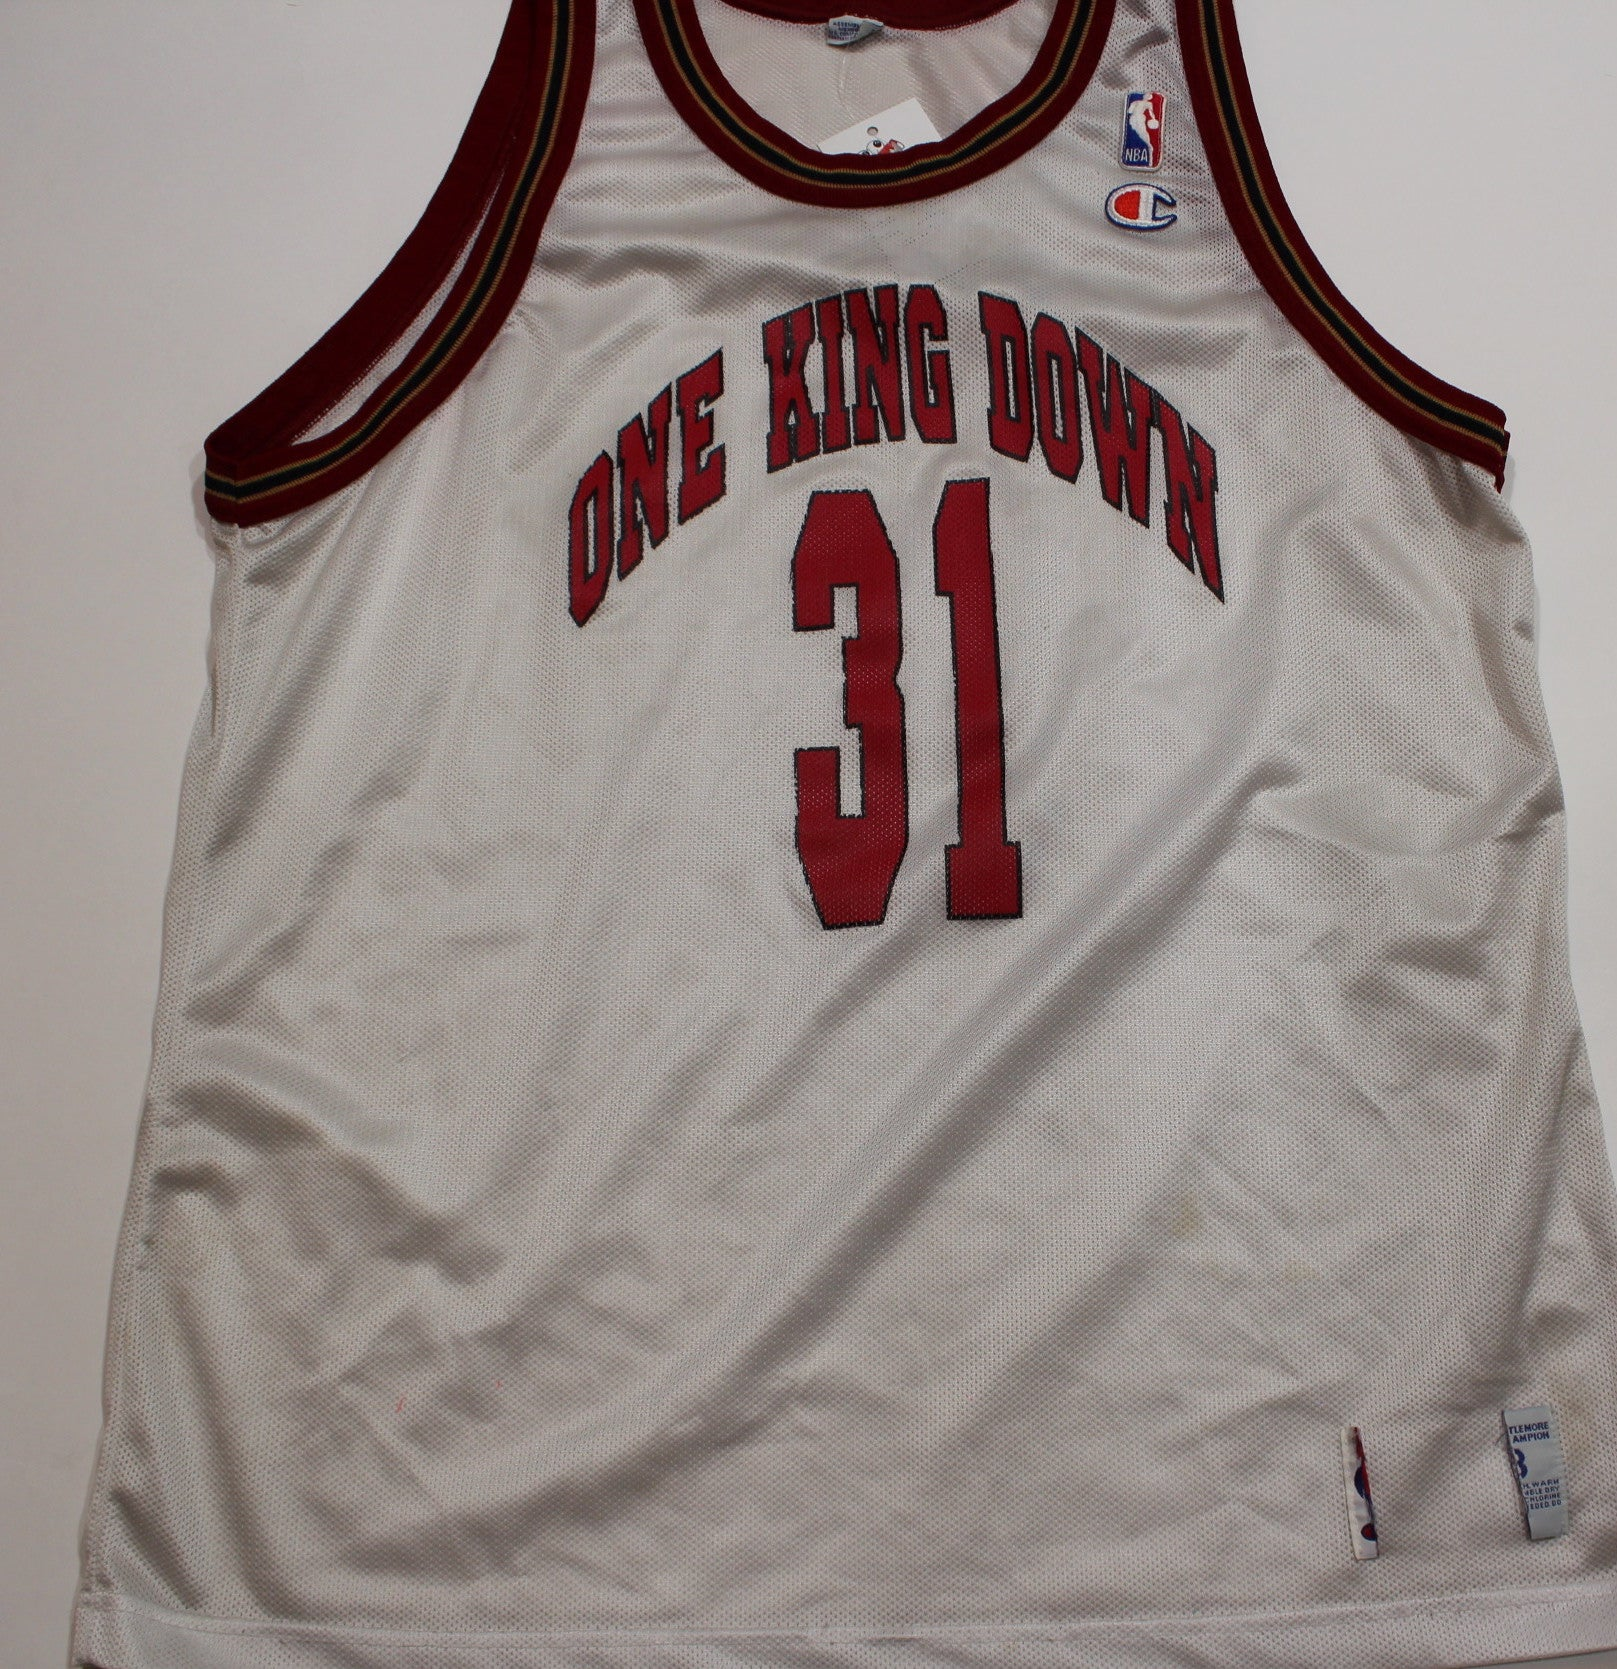 Vintage One King Down Basketball Jersey - jointcustodydc